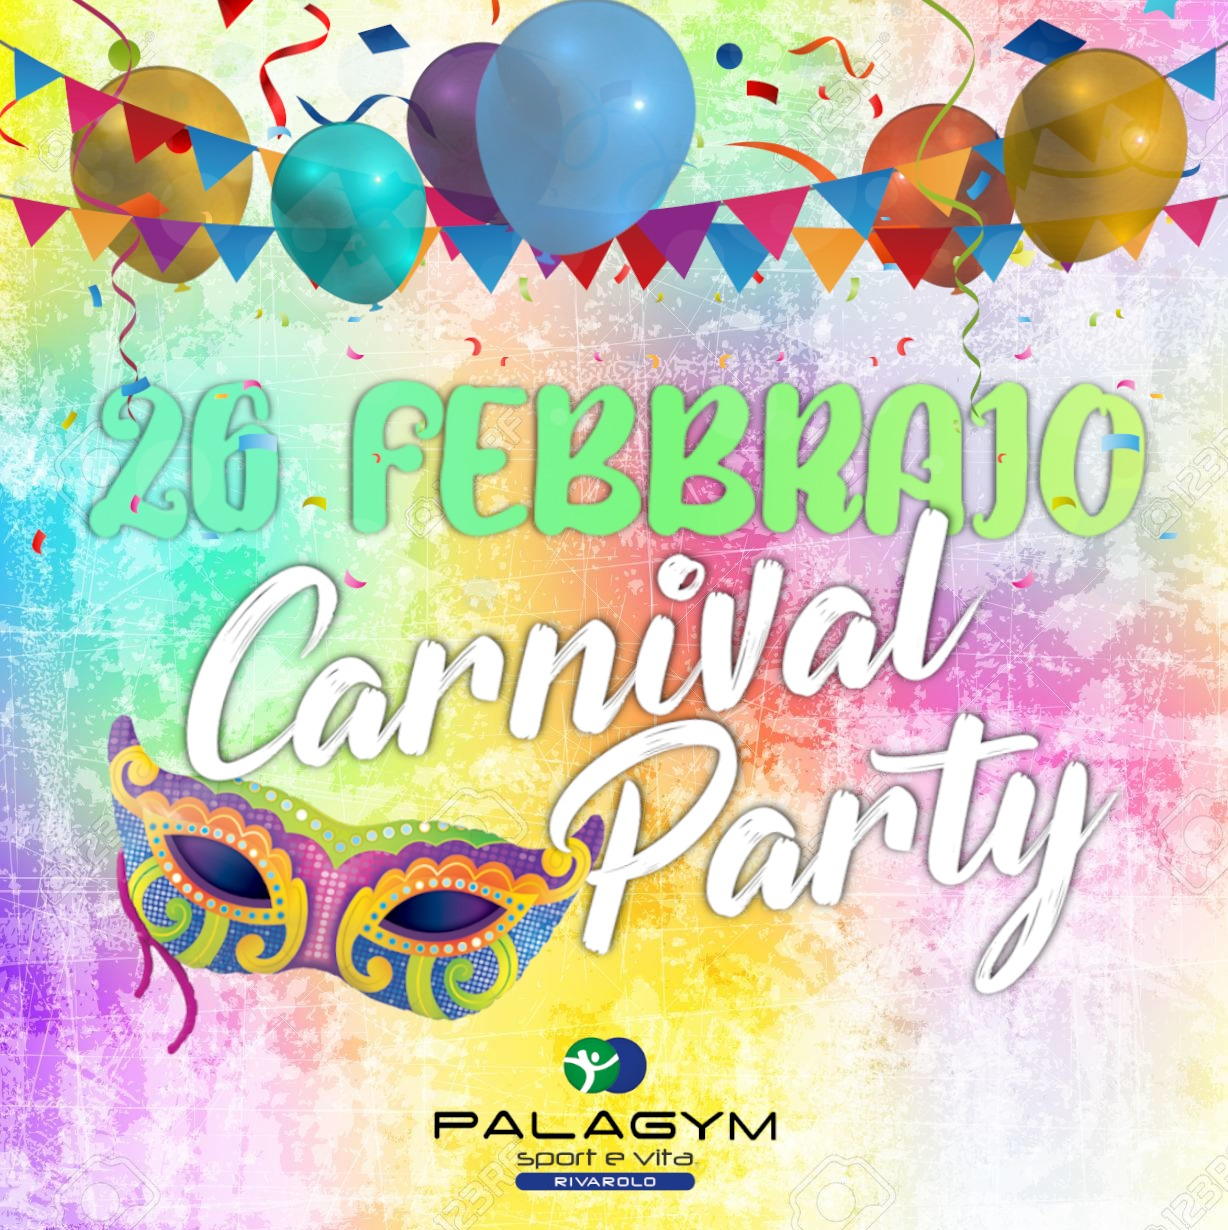 carnival party palagym rivarolo